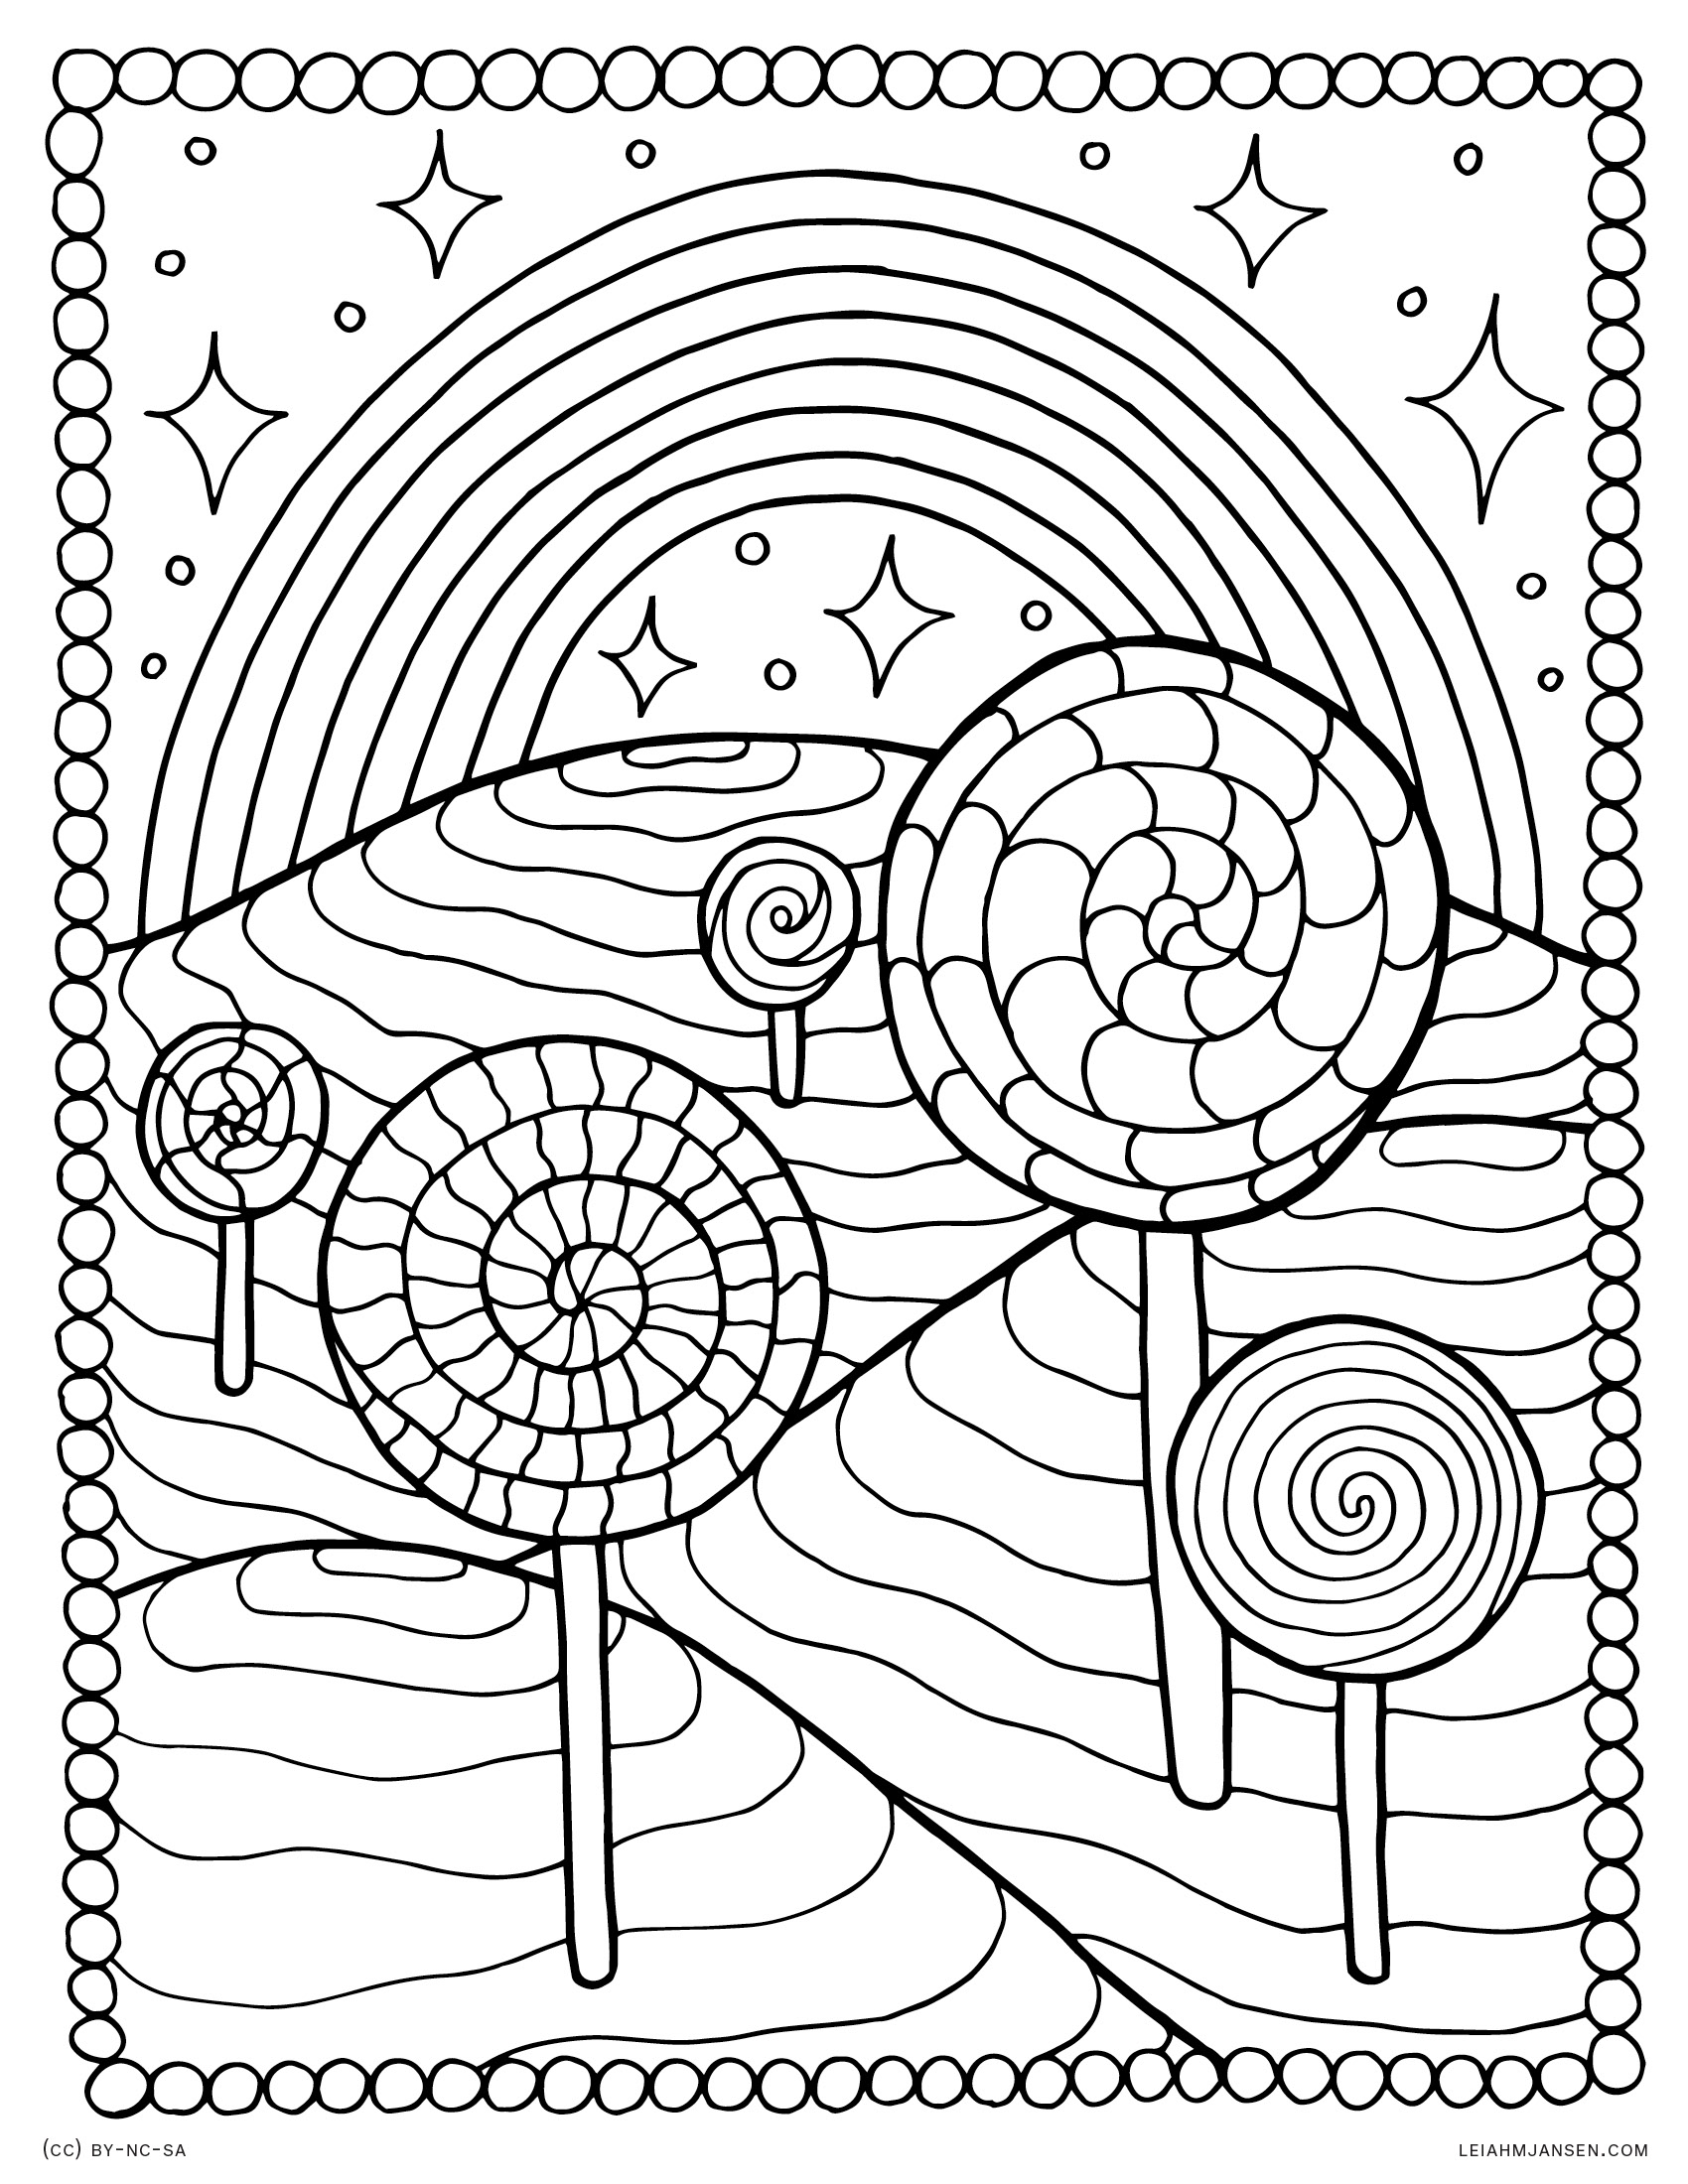 lollipop coloring pages free printable candy coloring pages for kids coloring lollipop pages